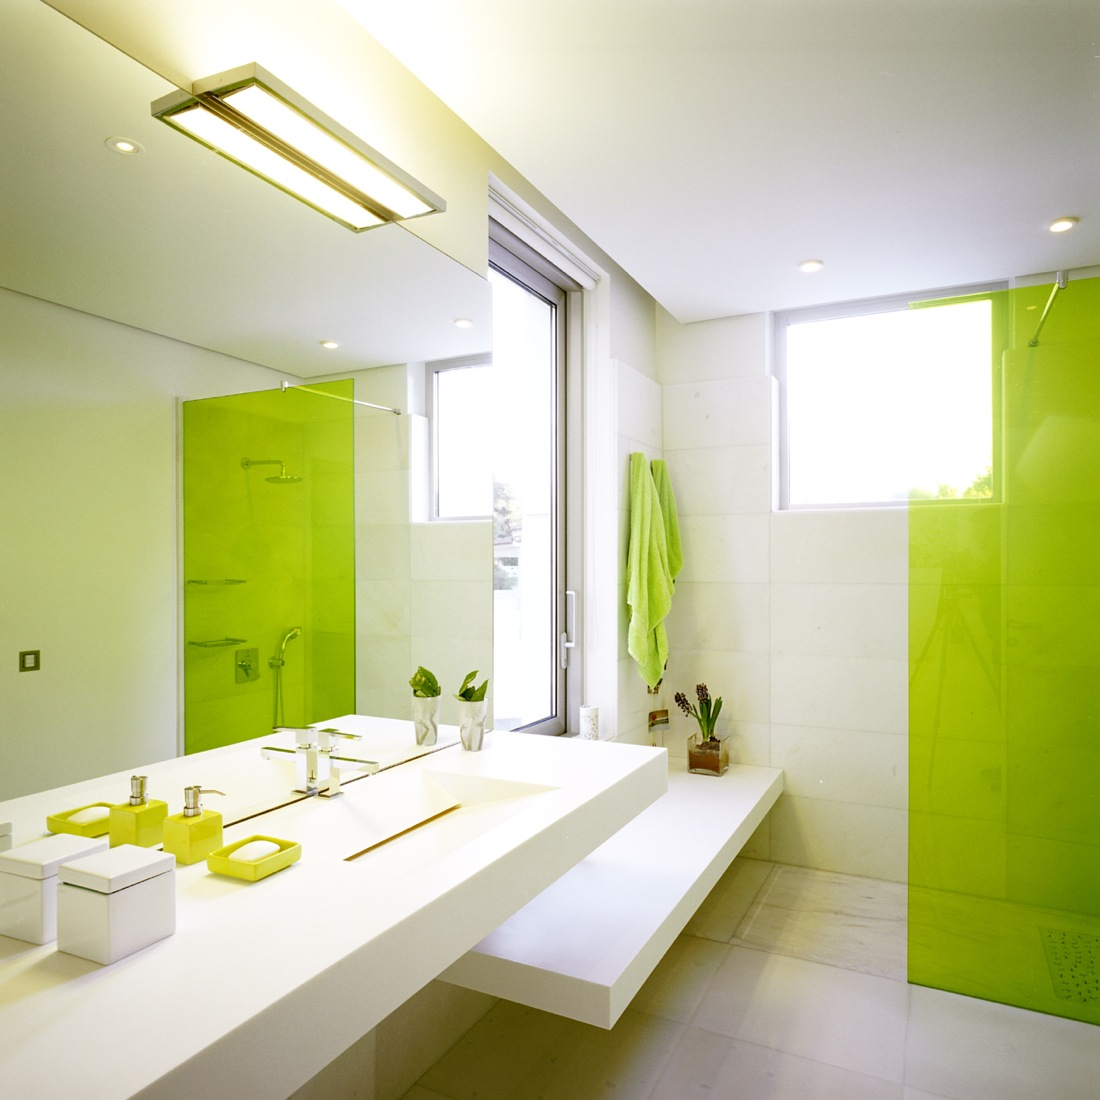 Minimalist bathroom designs home designs project for Bathroom design ideas